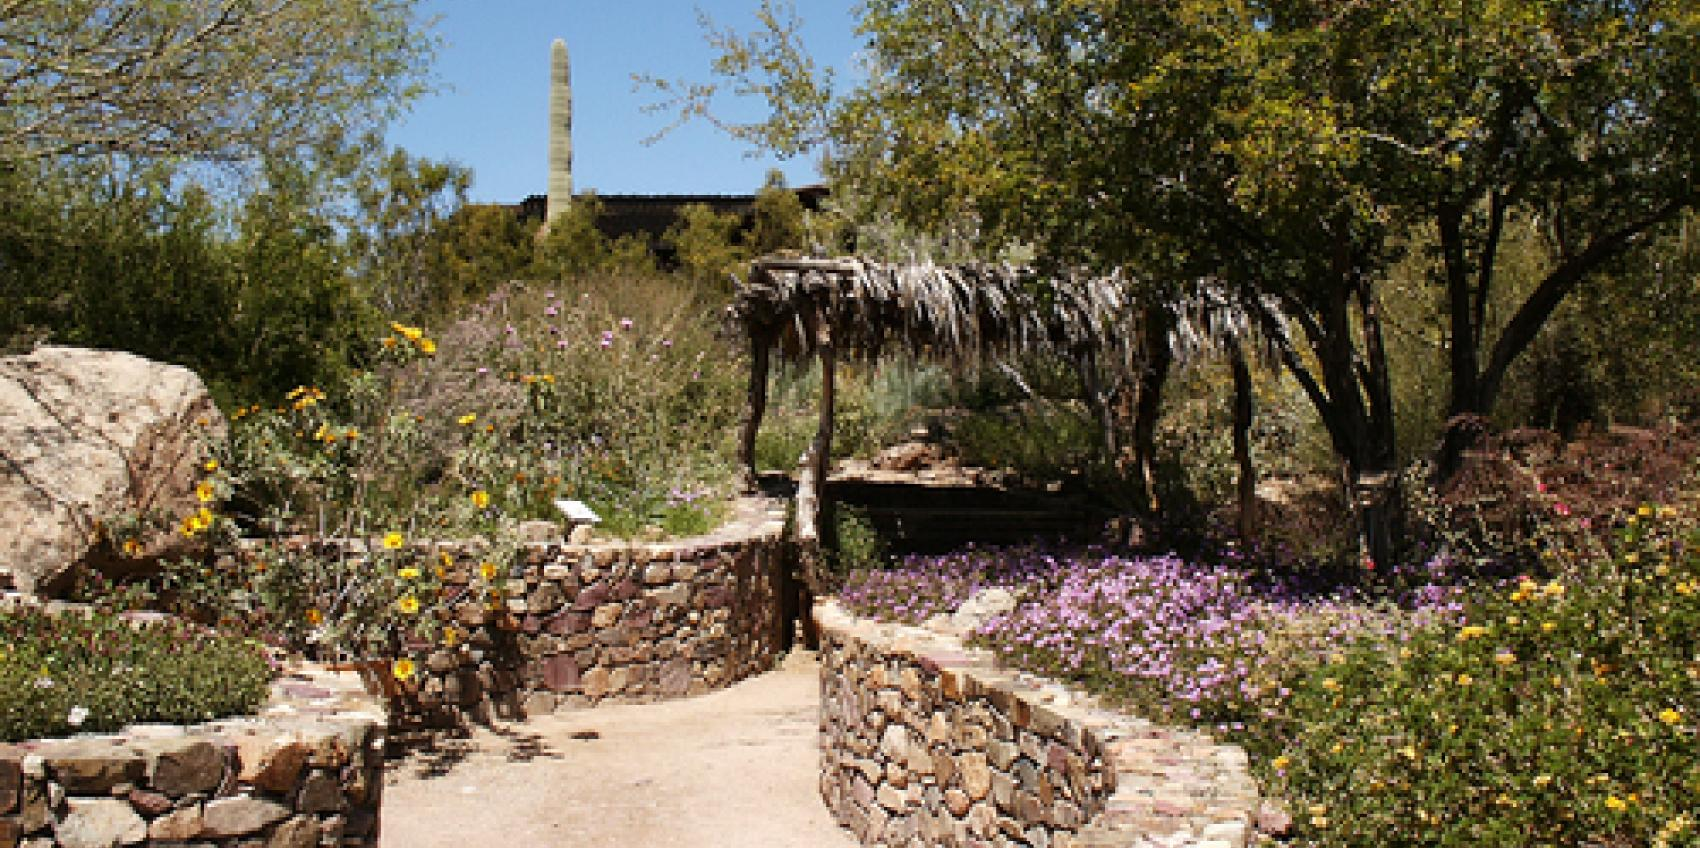 The Desert Museumu0027s Gardens Showcase A Vibrant Ecosystem And Represent A  Variety Of Biotic Communities Found Within The Sonoran Desert Region, ...